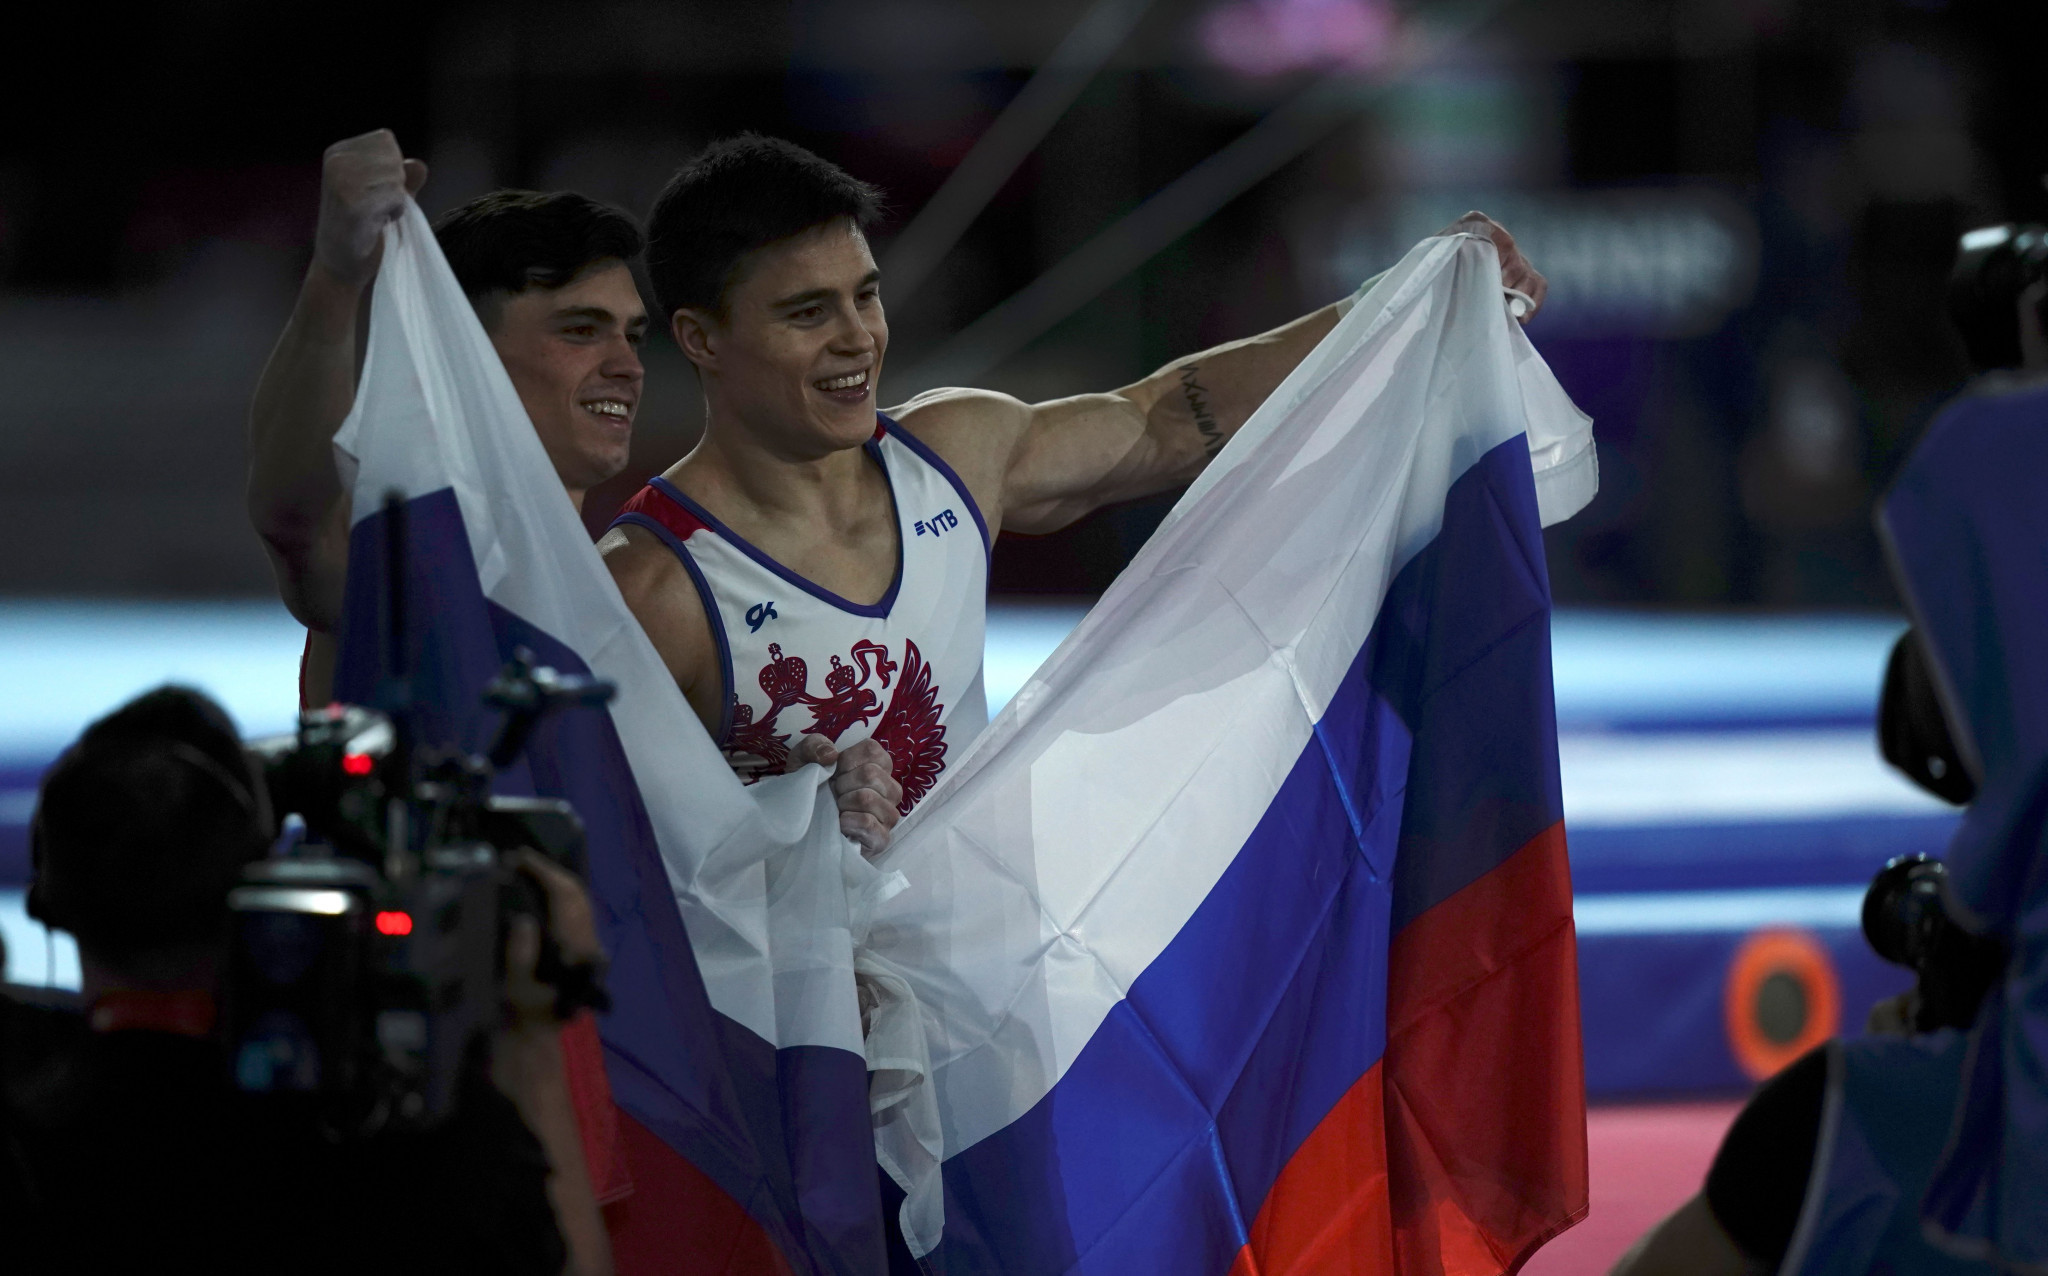 Russia's flag could be banned from major events if the World Anti-Doping Agency Executive Committee votes in favour of the CRC recommendations at its meeting in Paris next month ©Getty Images